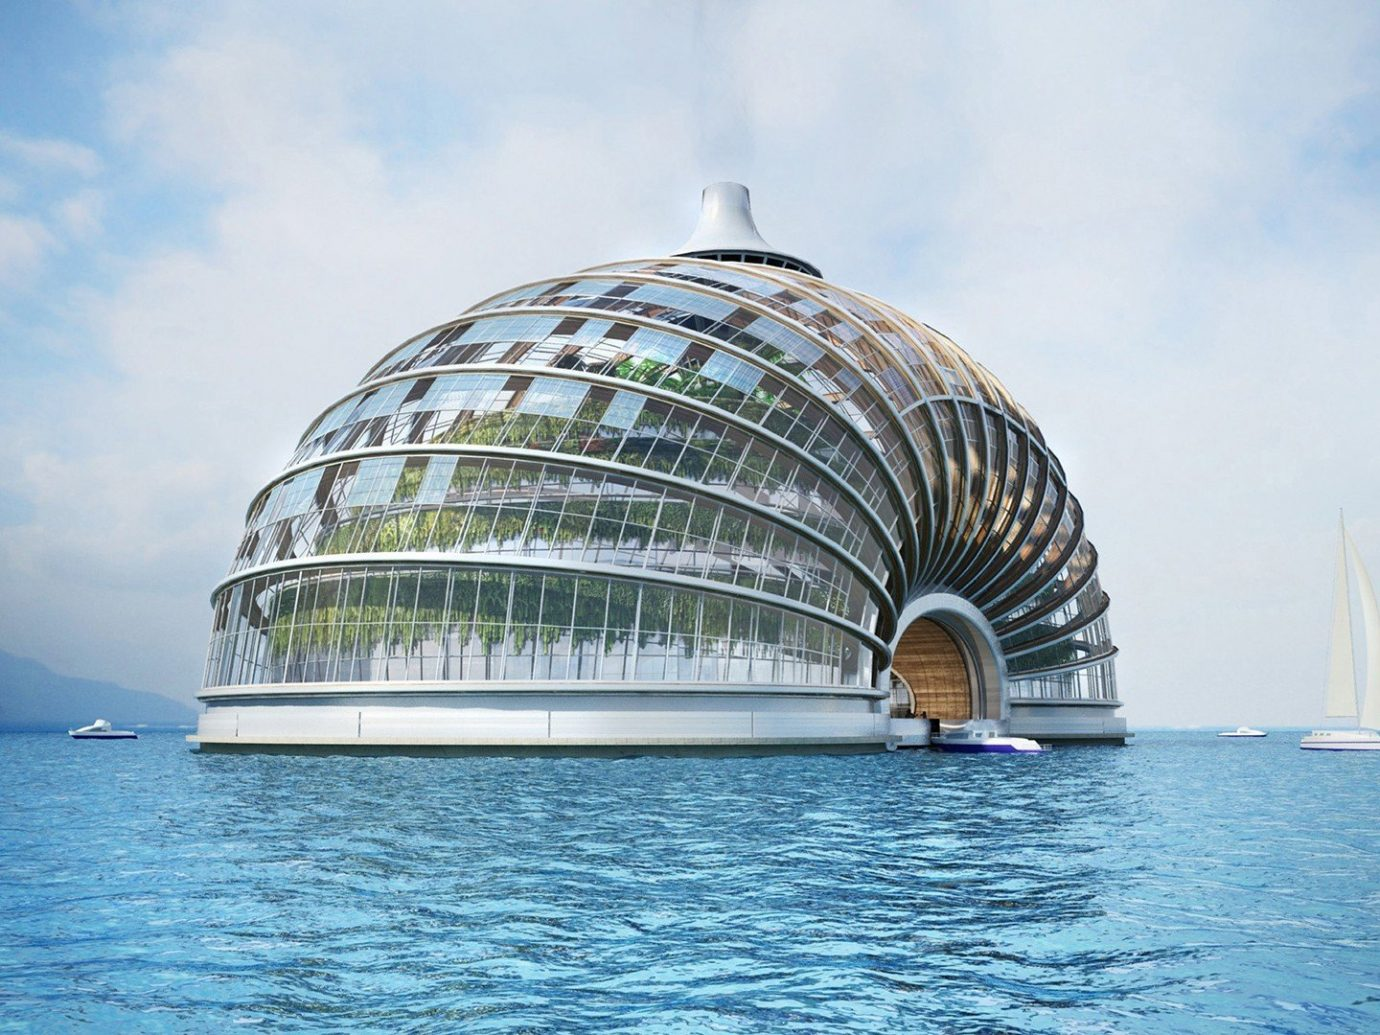 Style + Design water sky outdoor Boat landmark Sea Architecture Ocean atmosphere of earth vehicle dome reflection tower tourist attraction